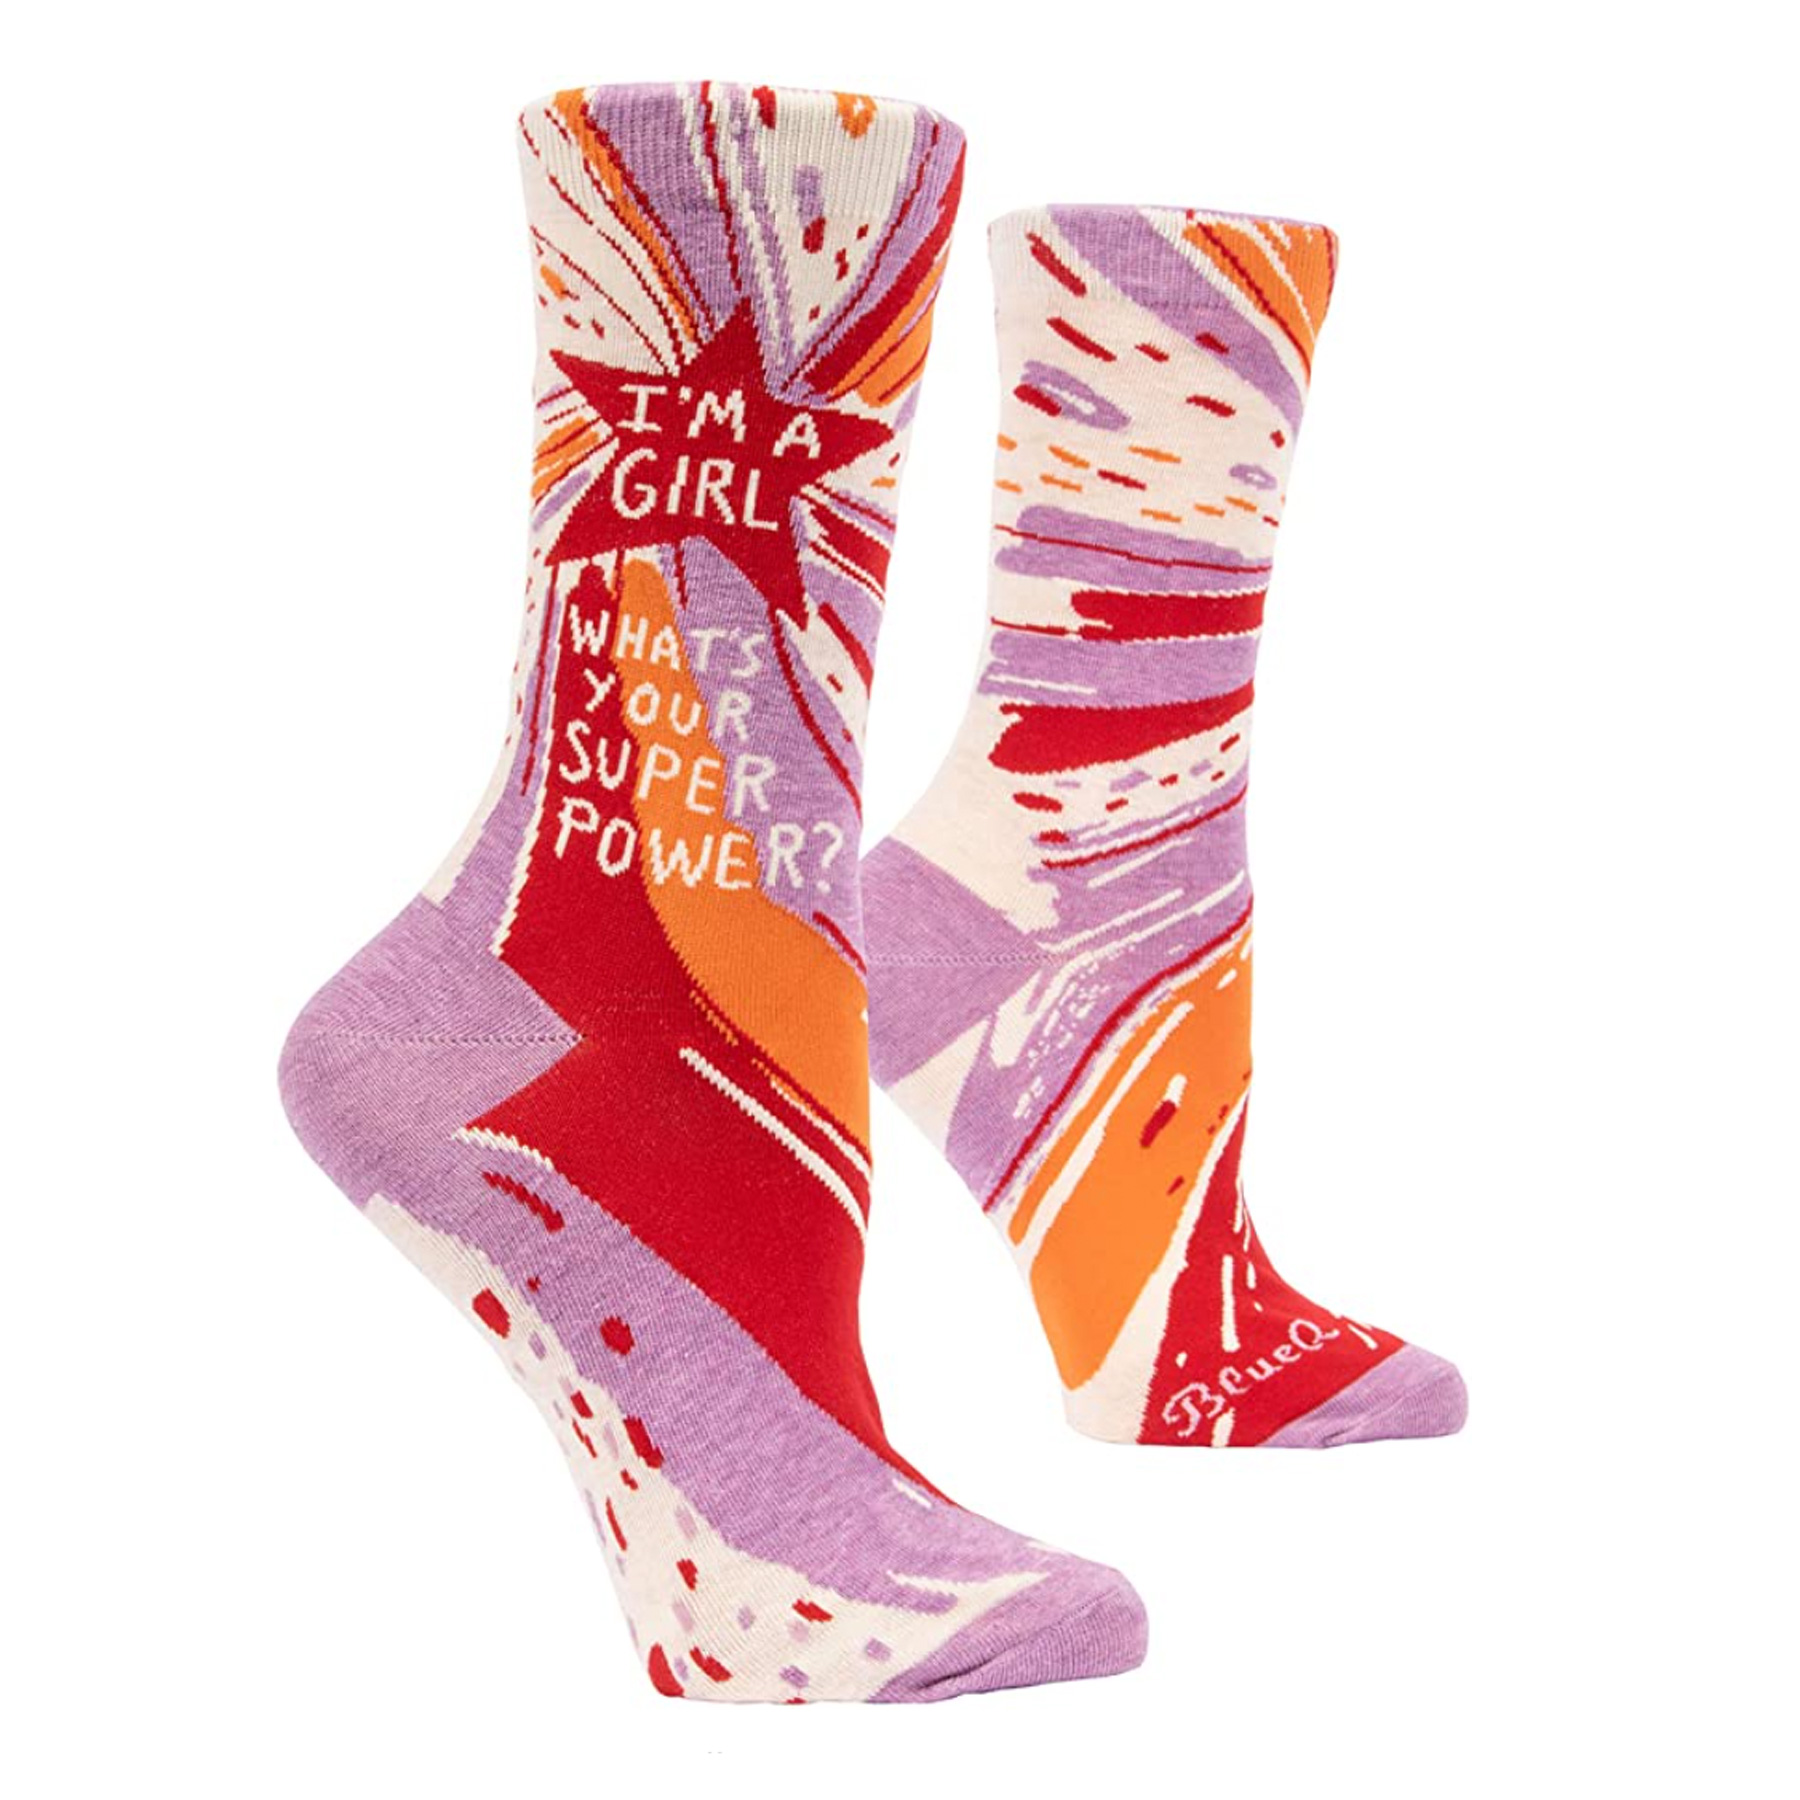 Gifts for Someone Going Through a Hard Time: Inspirational Socks